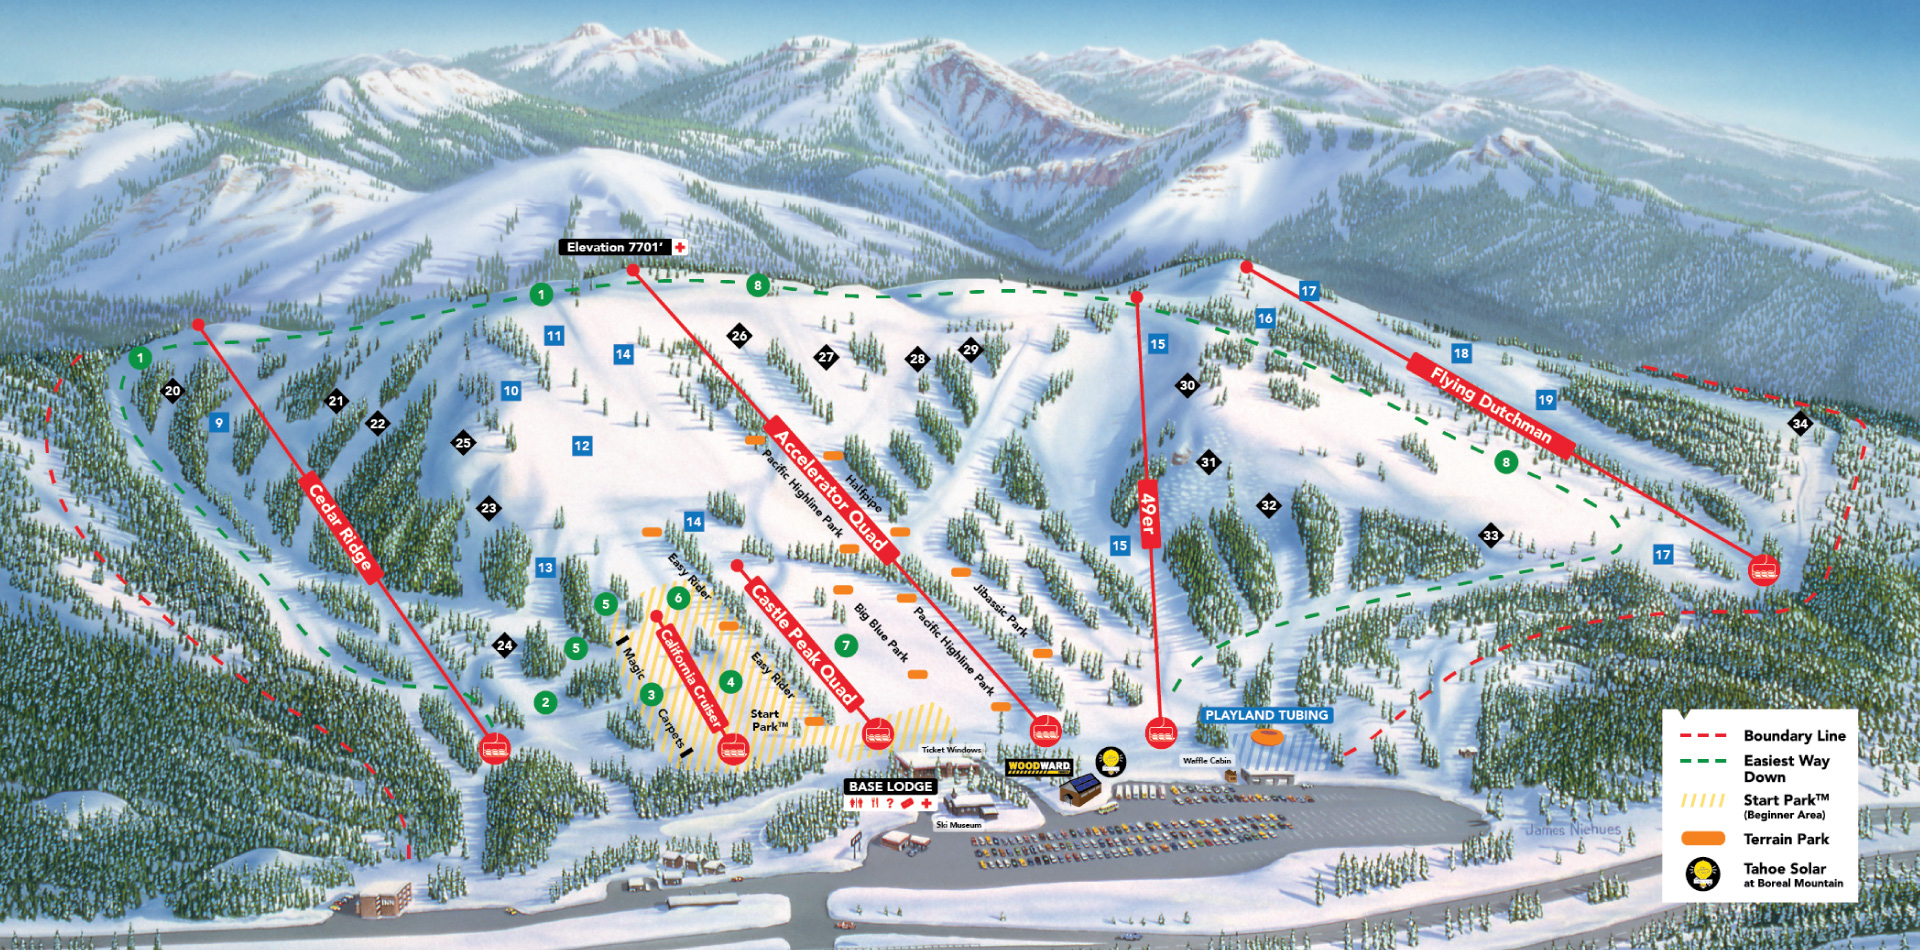 Trail Map - Truckee, CA - Lake Tahoe on boreal ski resort map, st martin resorts map, mammoth mountain ski area map, california snow map, mt. shasta ski park trail map, mt. baldy ski map, heavenly ski resort trail map, california coastal islands map, california dodge ridge ski resort, phoenix resorts map, alta ski resort trail map, bear valley ski resort trail map, california fishing map, california water supply map, big bear ski resort map, california race tracks map, california campgrounds map, california hiking map, california recreation map, alpine meadows ski resort trail map,